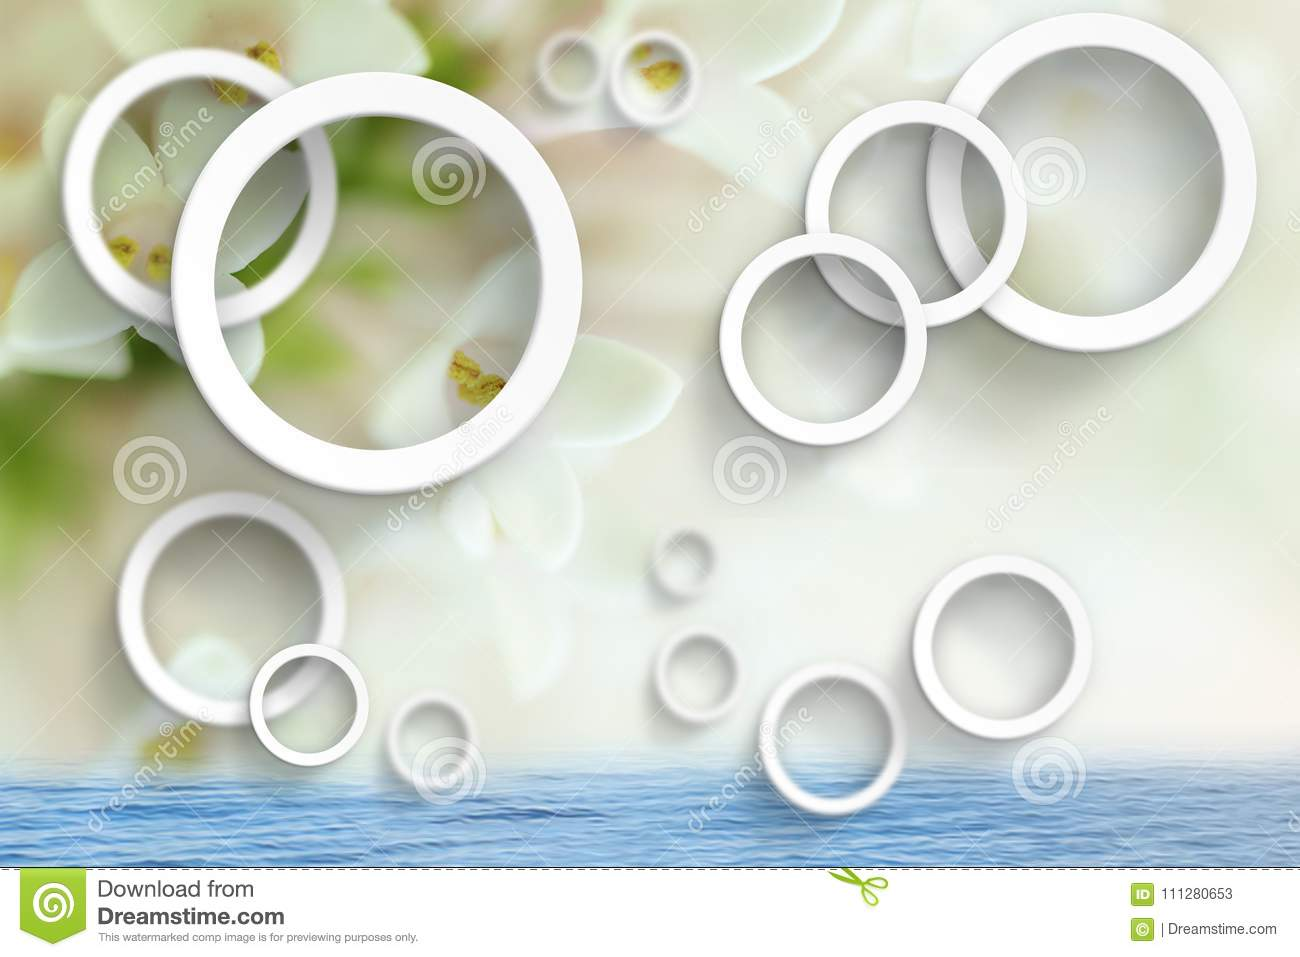 Flowers abstraction. Stereoscopic photo wallpaper for interior. 3D rendering.